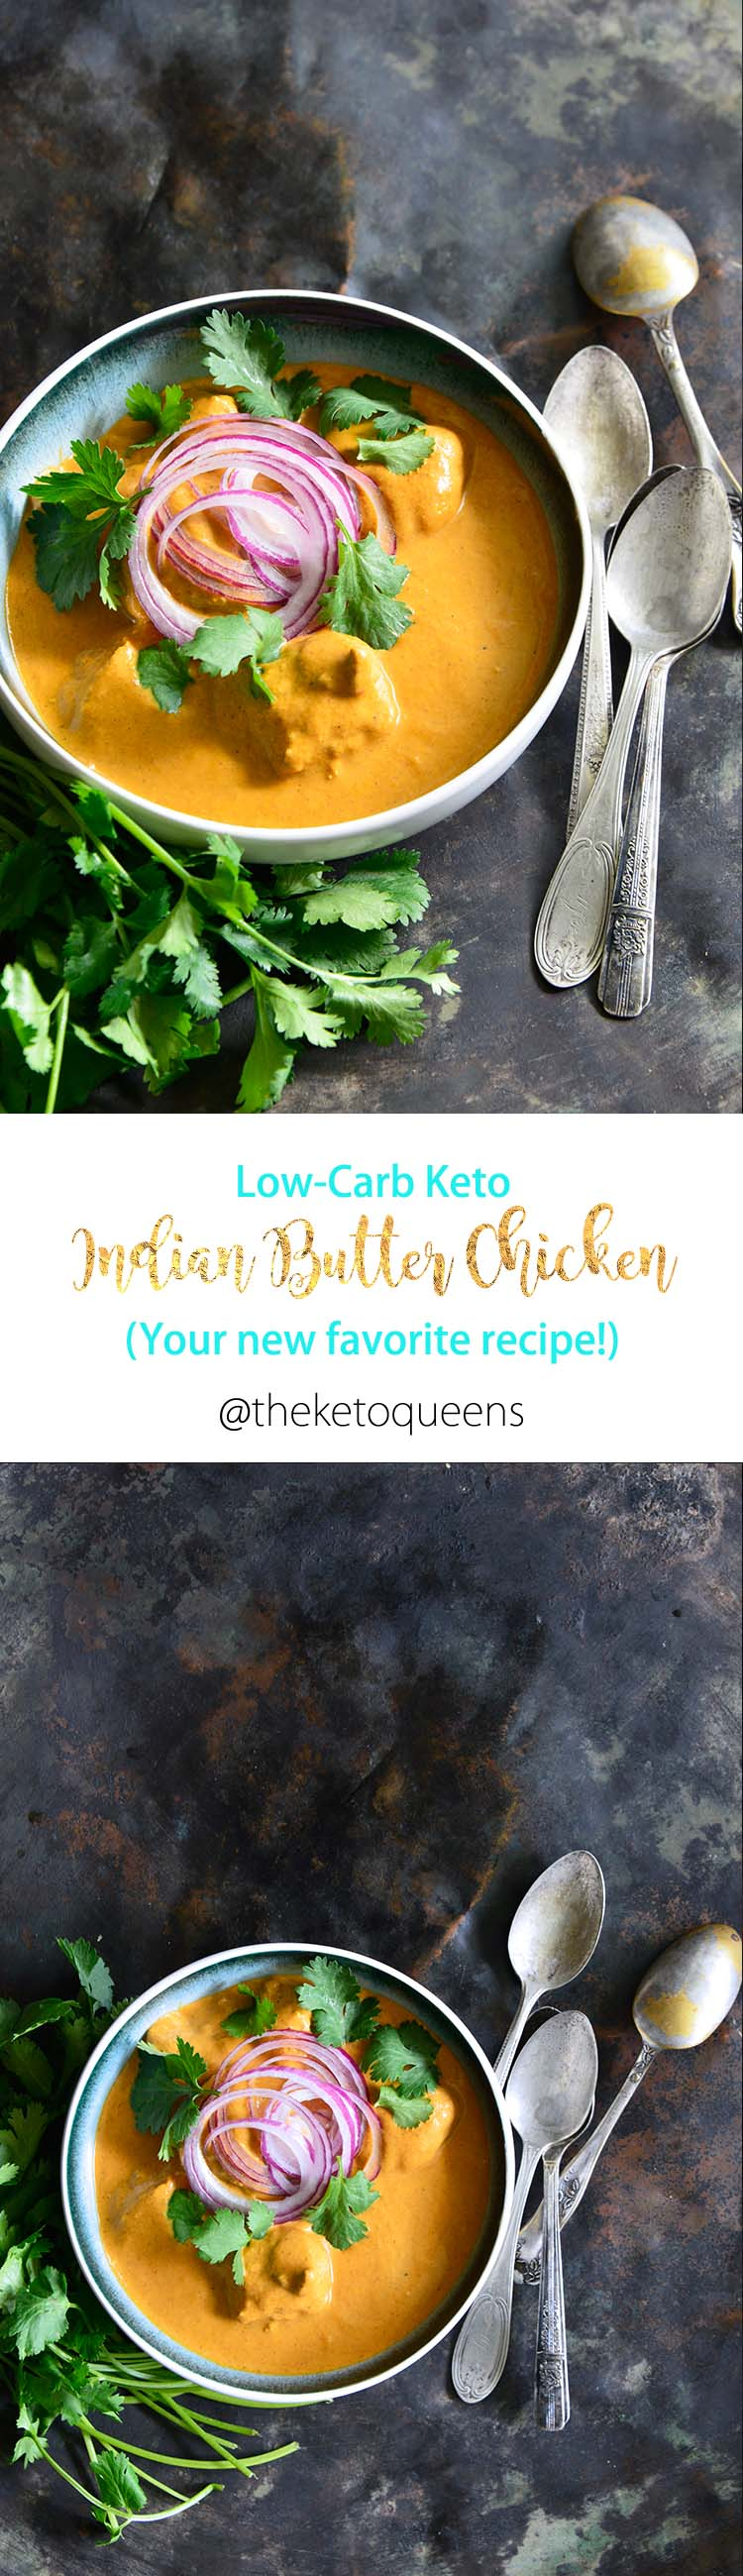 Low Carb Keto Indian Butter Chicken is every bit as rich and creamy as the original recipe. It makes for a quick and easy weeknight dinner recipe. #ketorecipes #keto #lowcarb #lowcarbrecipes #ketogenic #ketosis #butterchicken